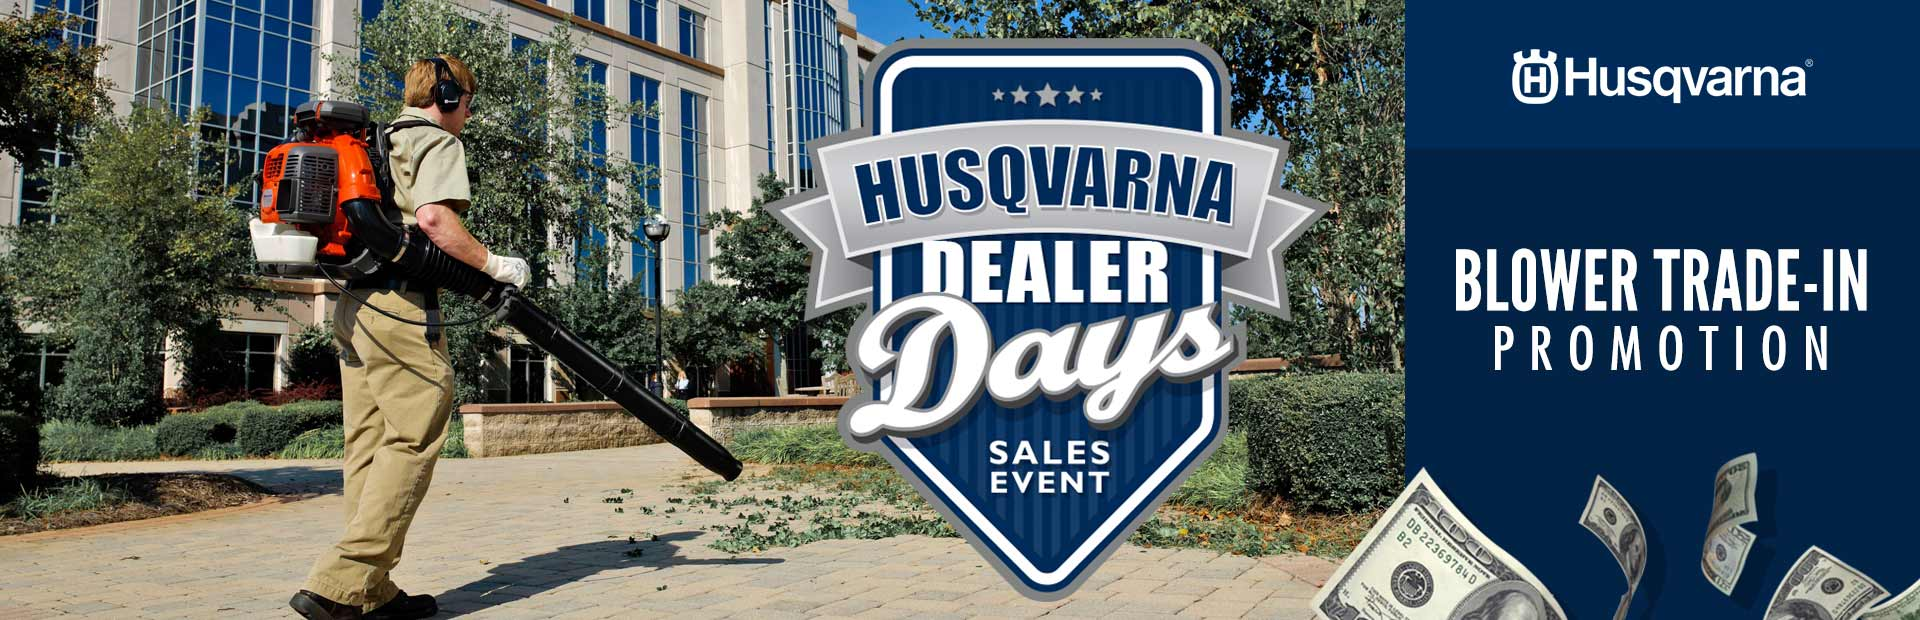 Husqvarna: Blower Trade-In Promotion